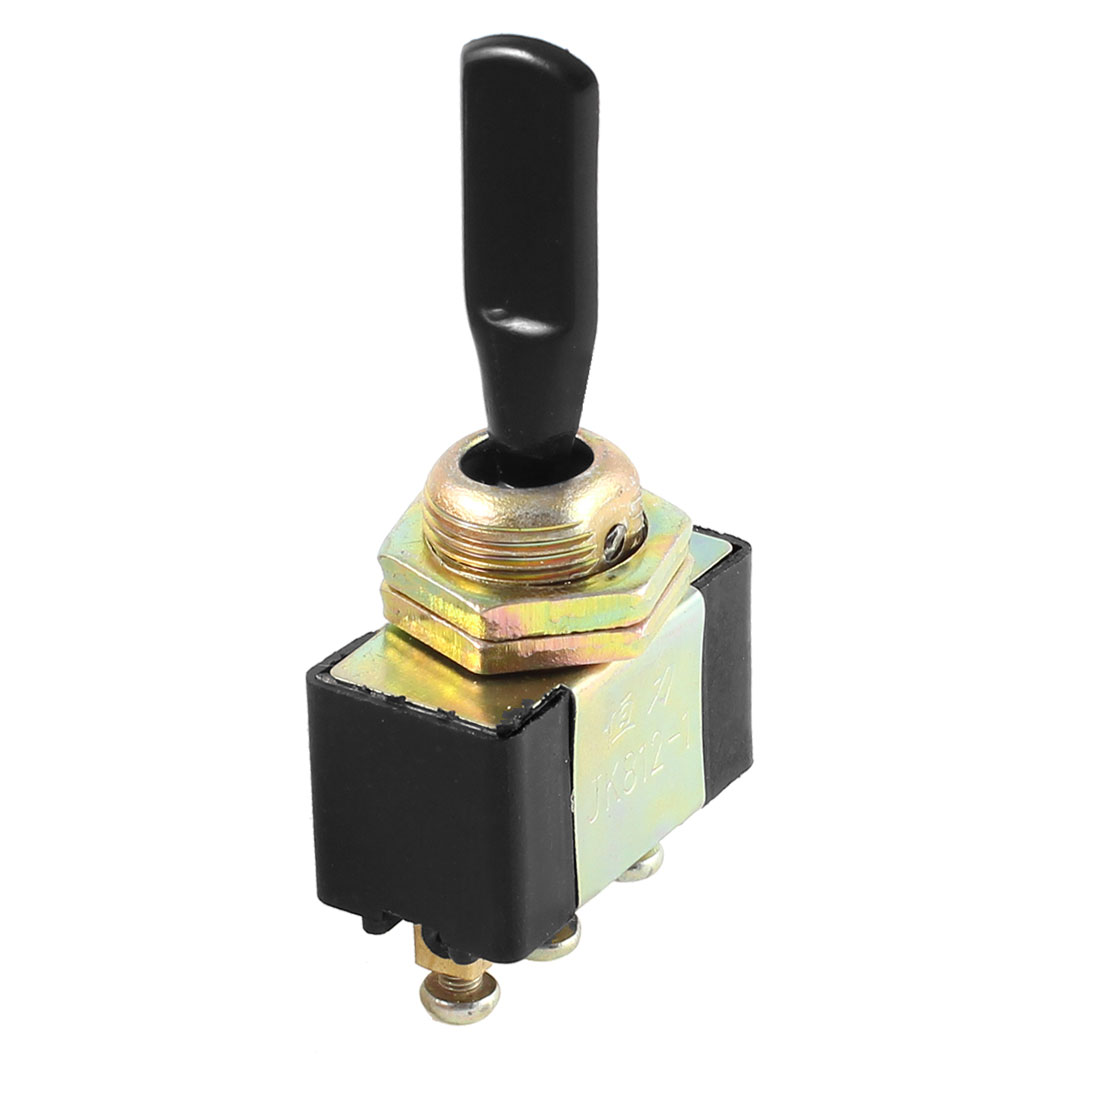 SPST ON/OFF/ON 3 Position 3-Terminal Toggle Switch AC 250V/10A 125V/15A